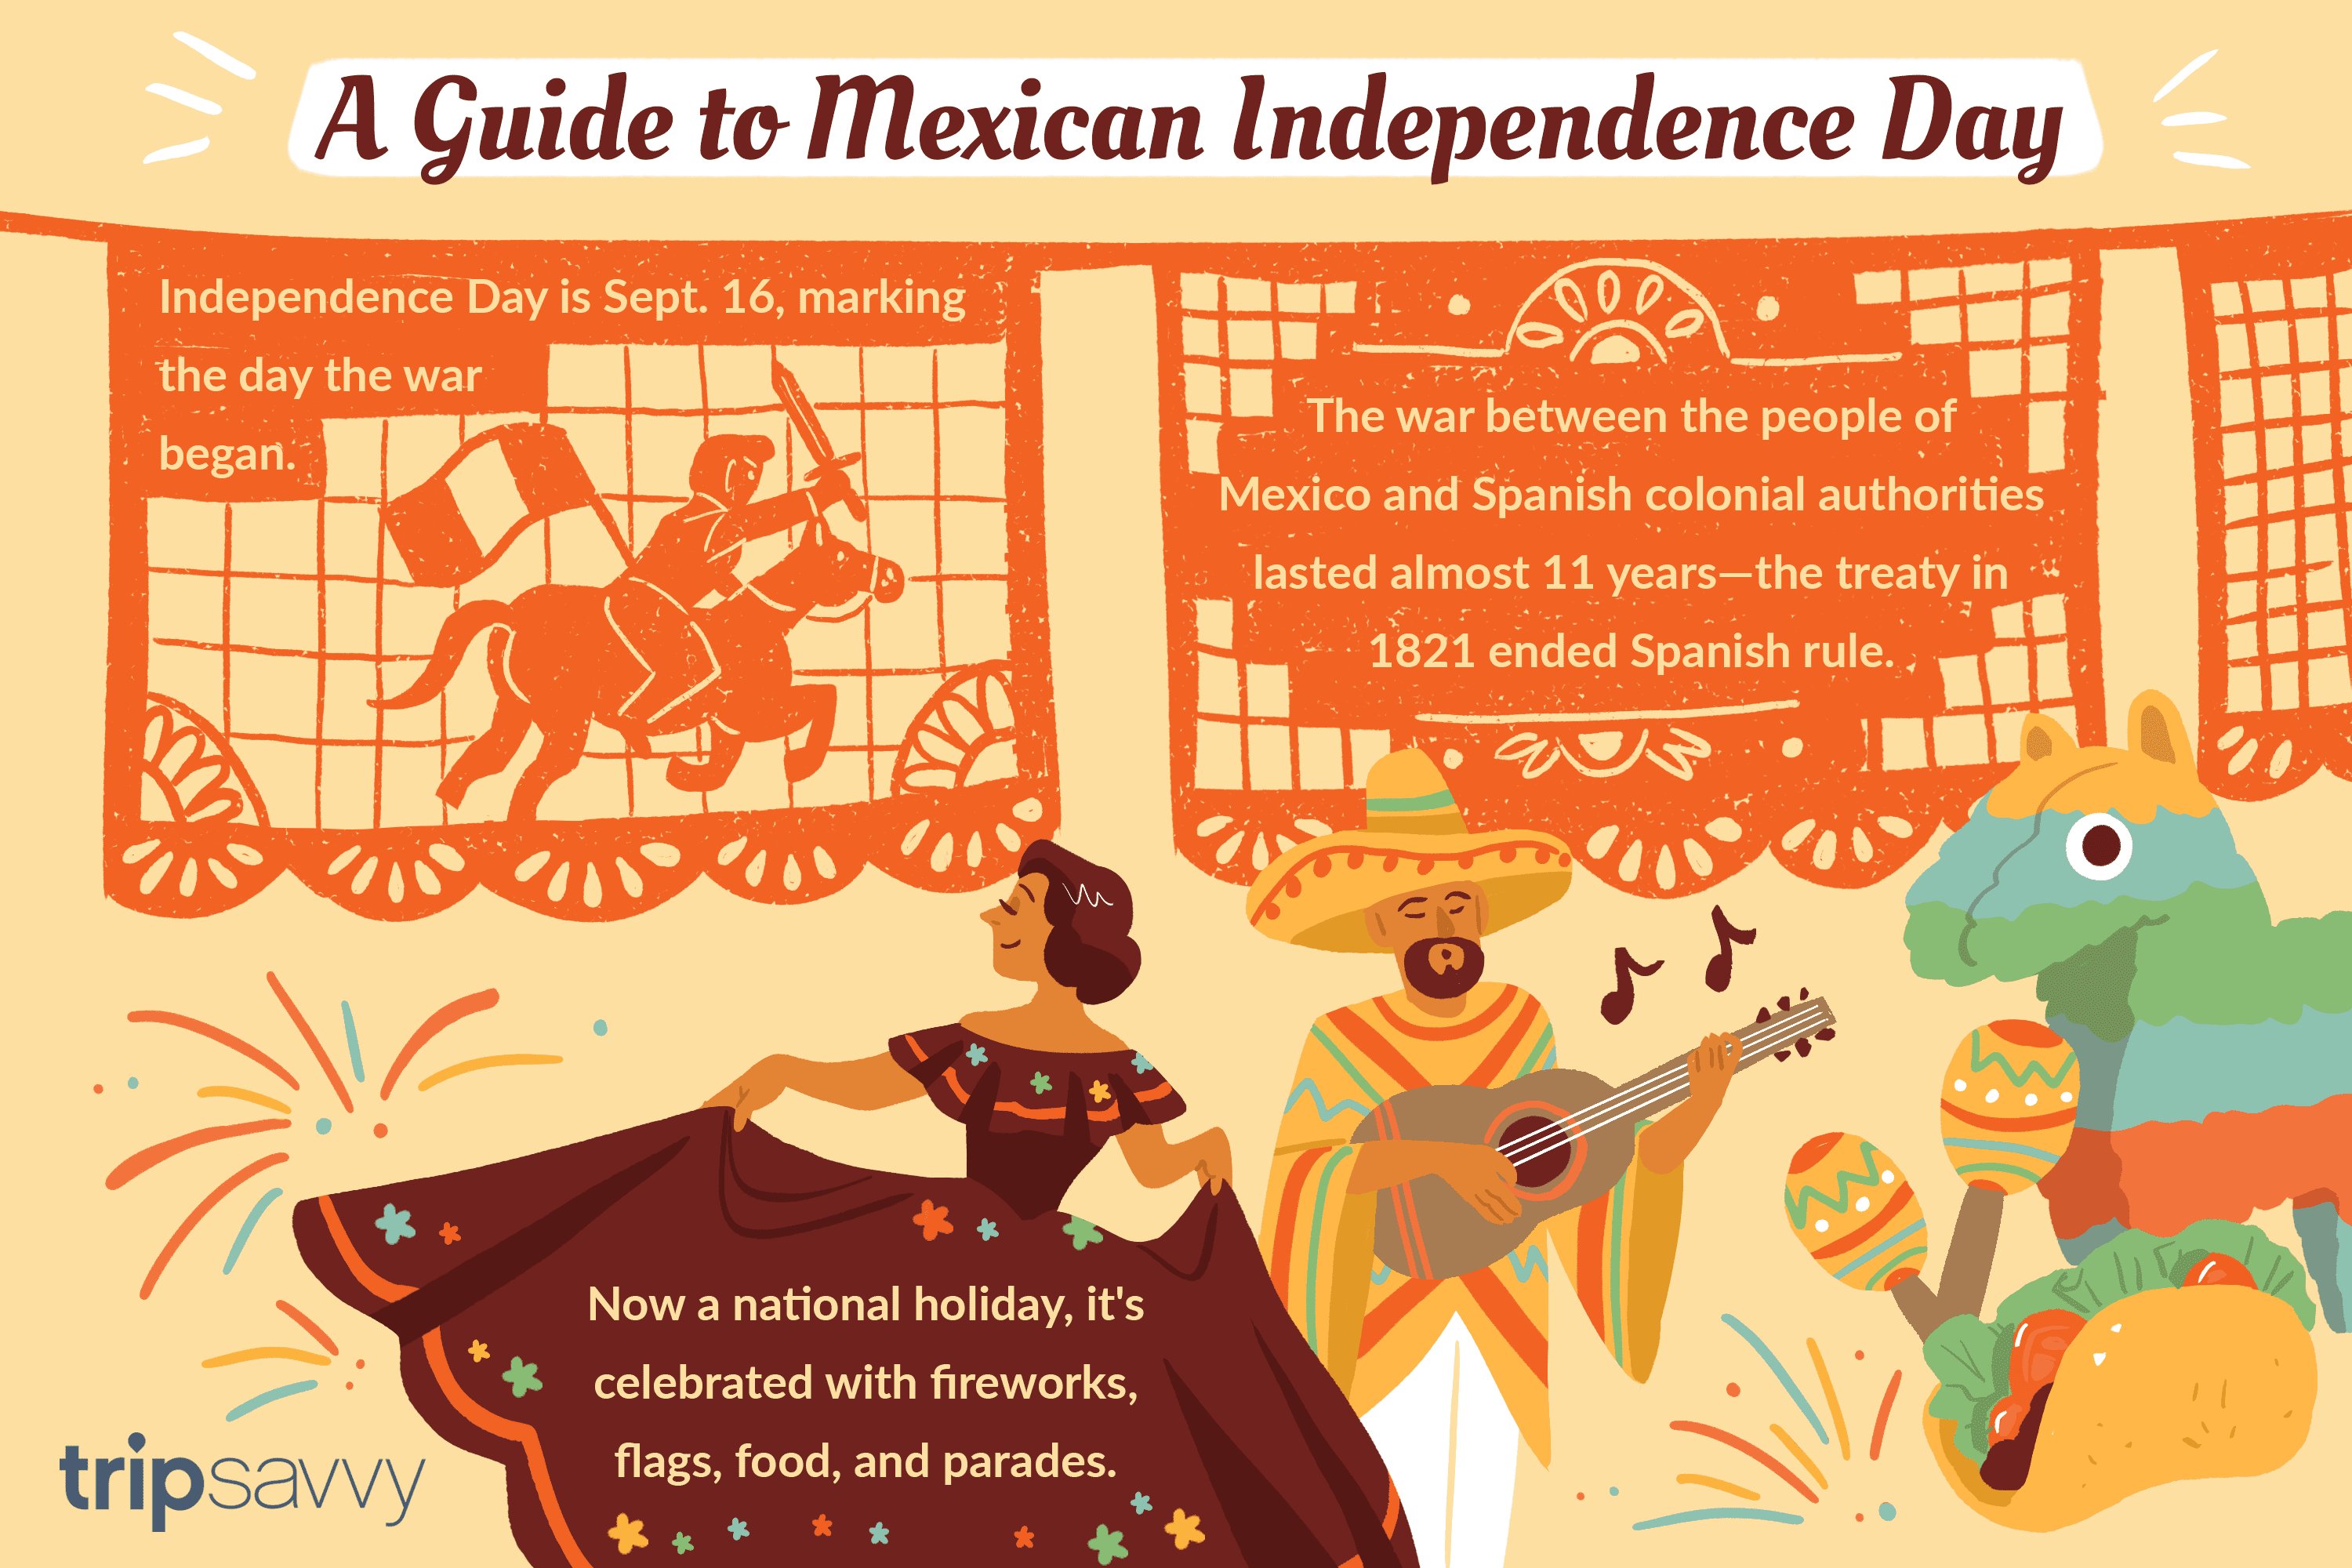 Independence Day.Things To Do For Mexican Independence Day In Mexico